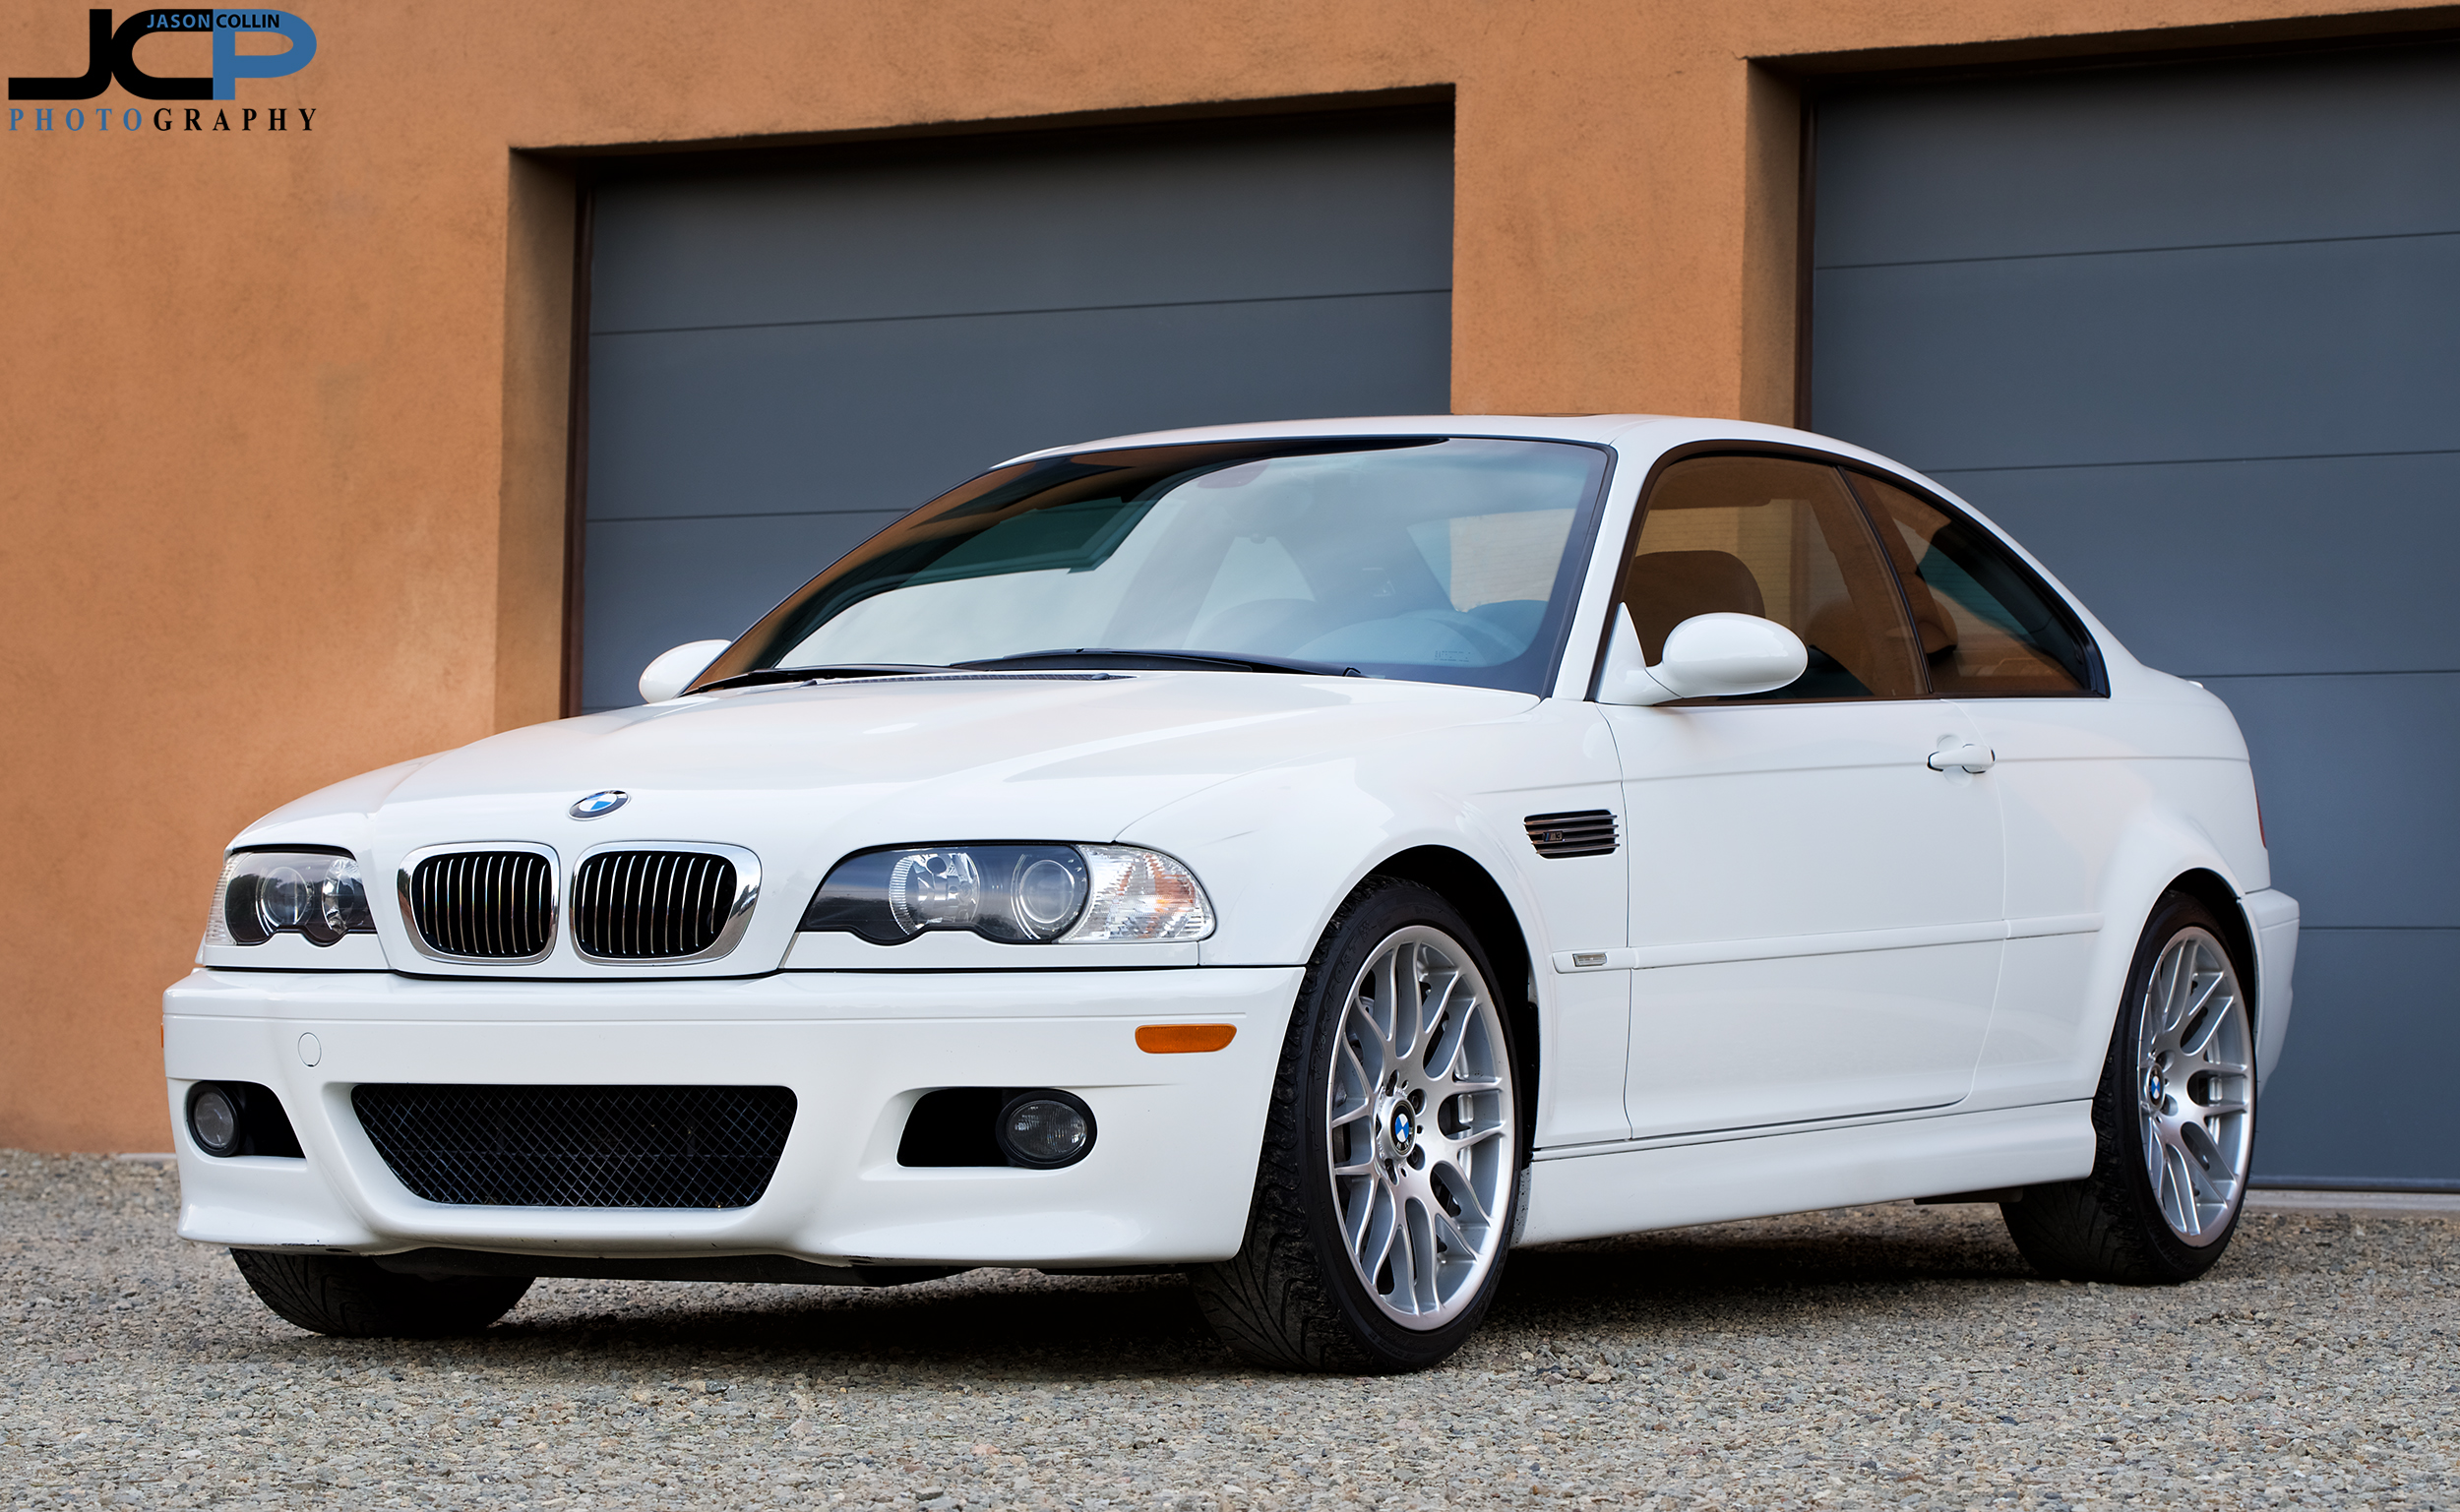 The modern classic and future class BMW M3 E46 generation photographed in Santa Fe, New Mexico